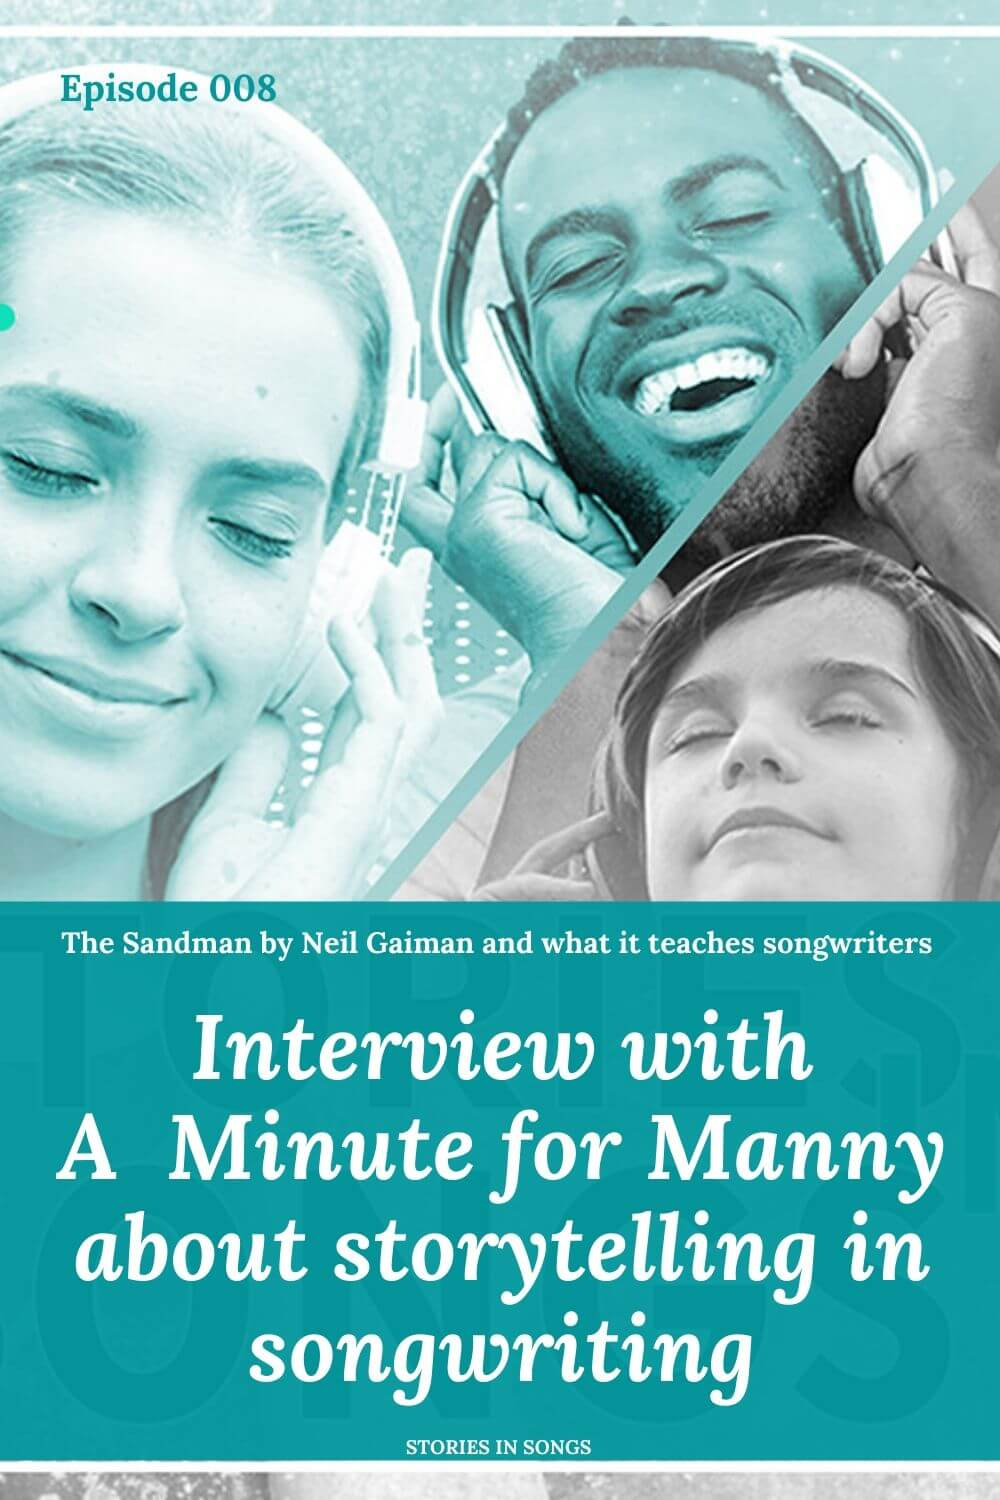 Transcript of Episode 008 - Interview with A Minute for Manny about Storytelling in Songwriting